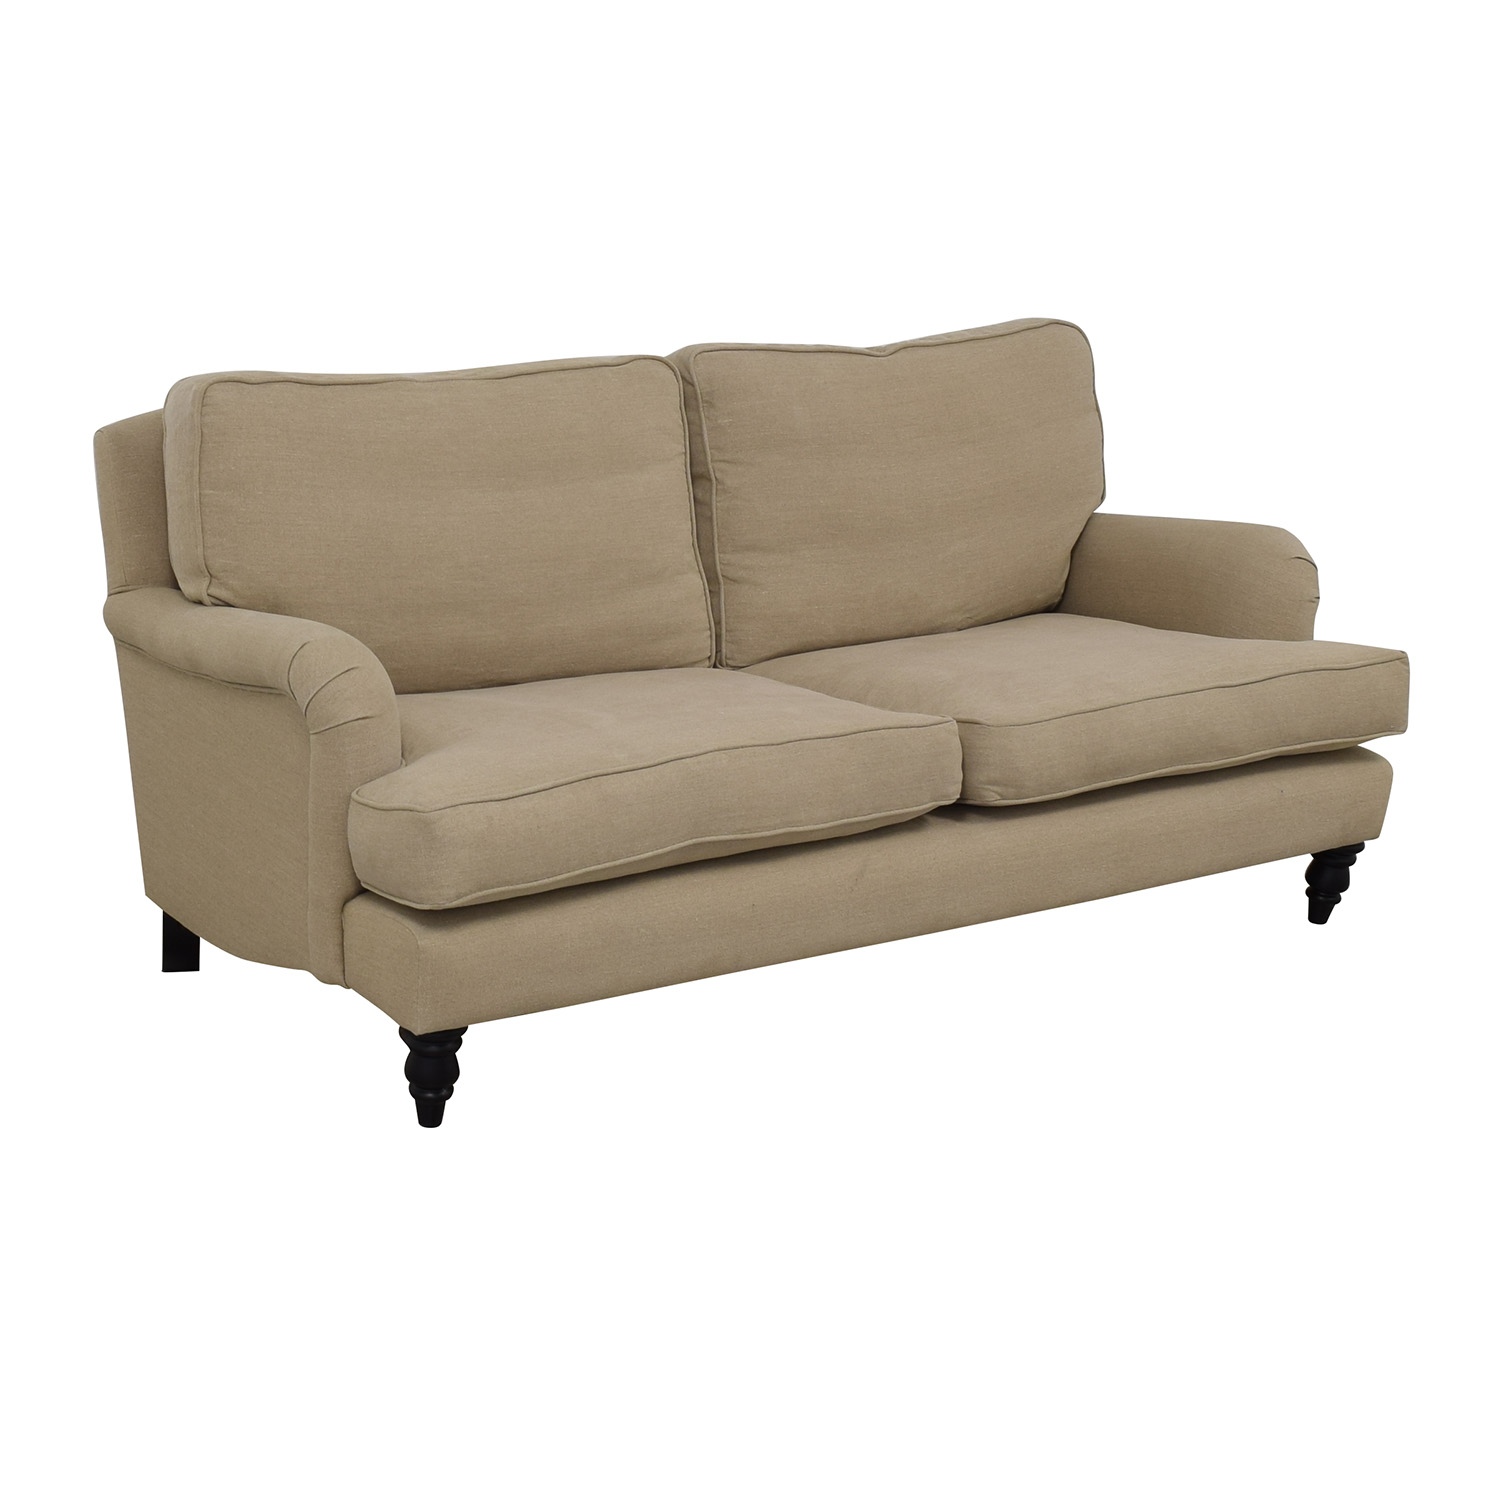 Sofa.com Sofa.com Bluebell Sofa for sale